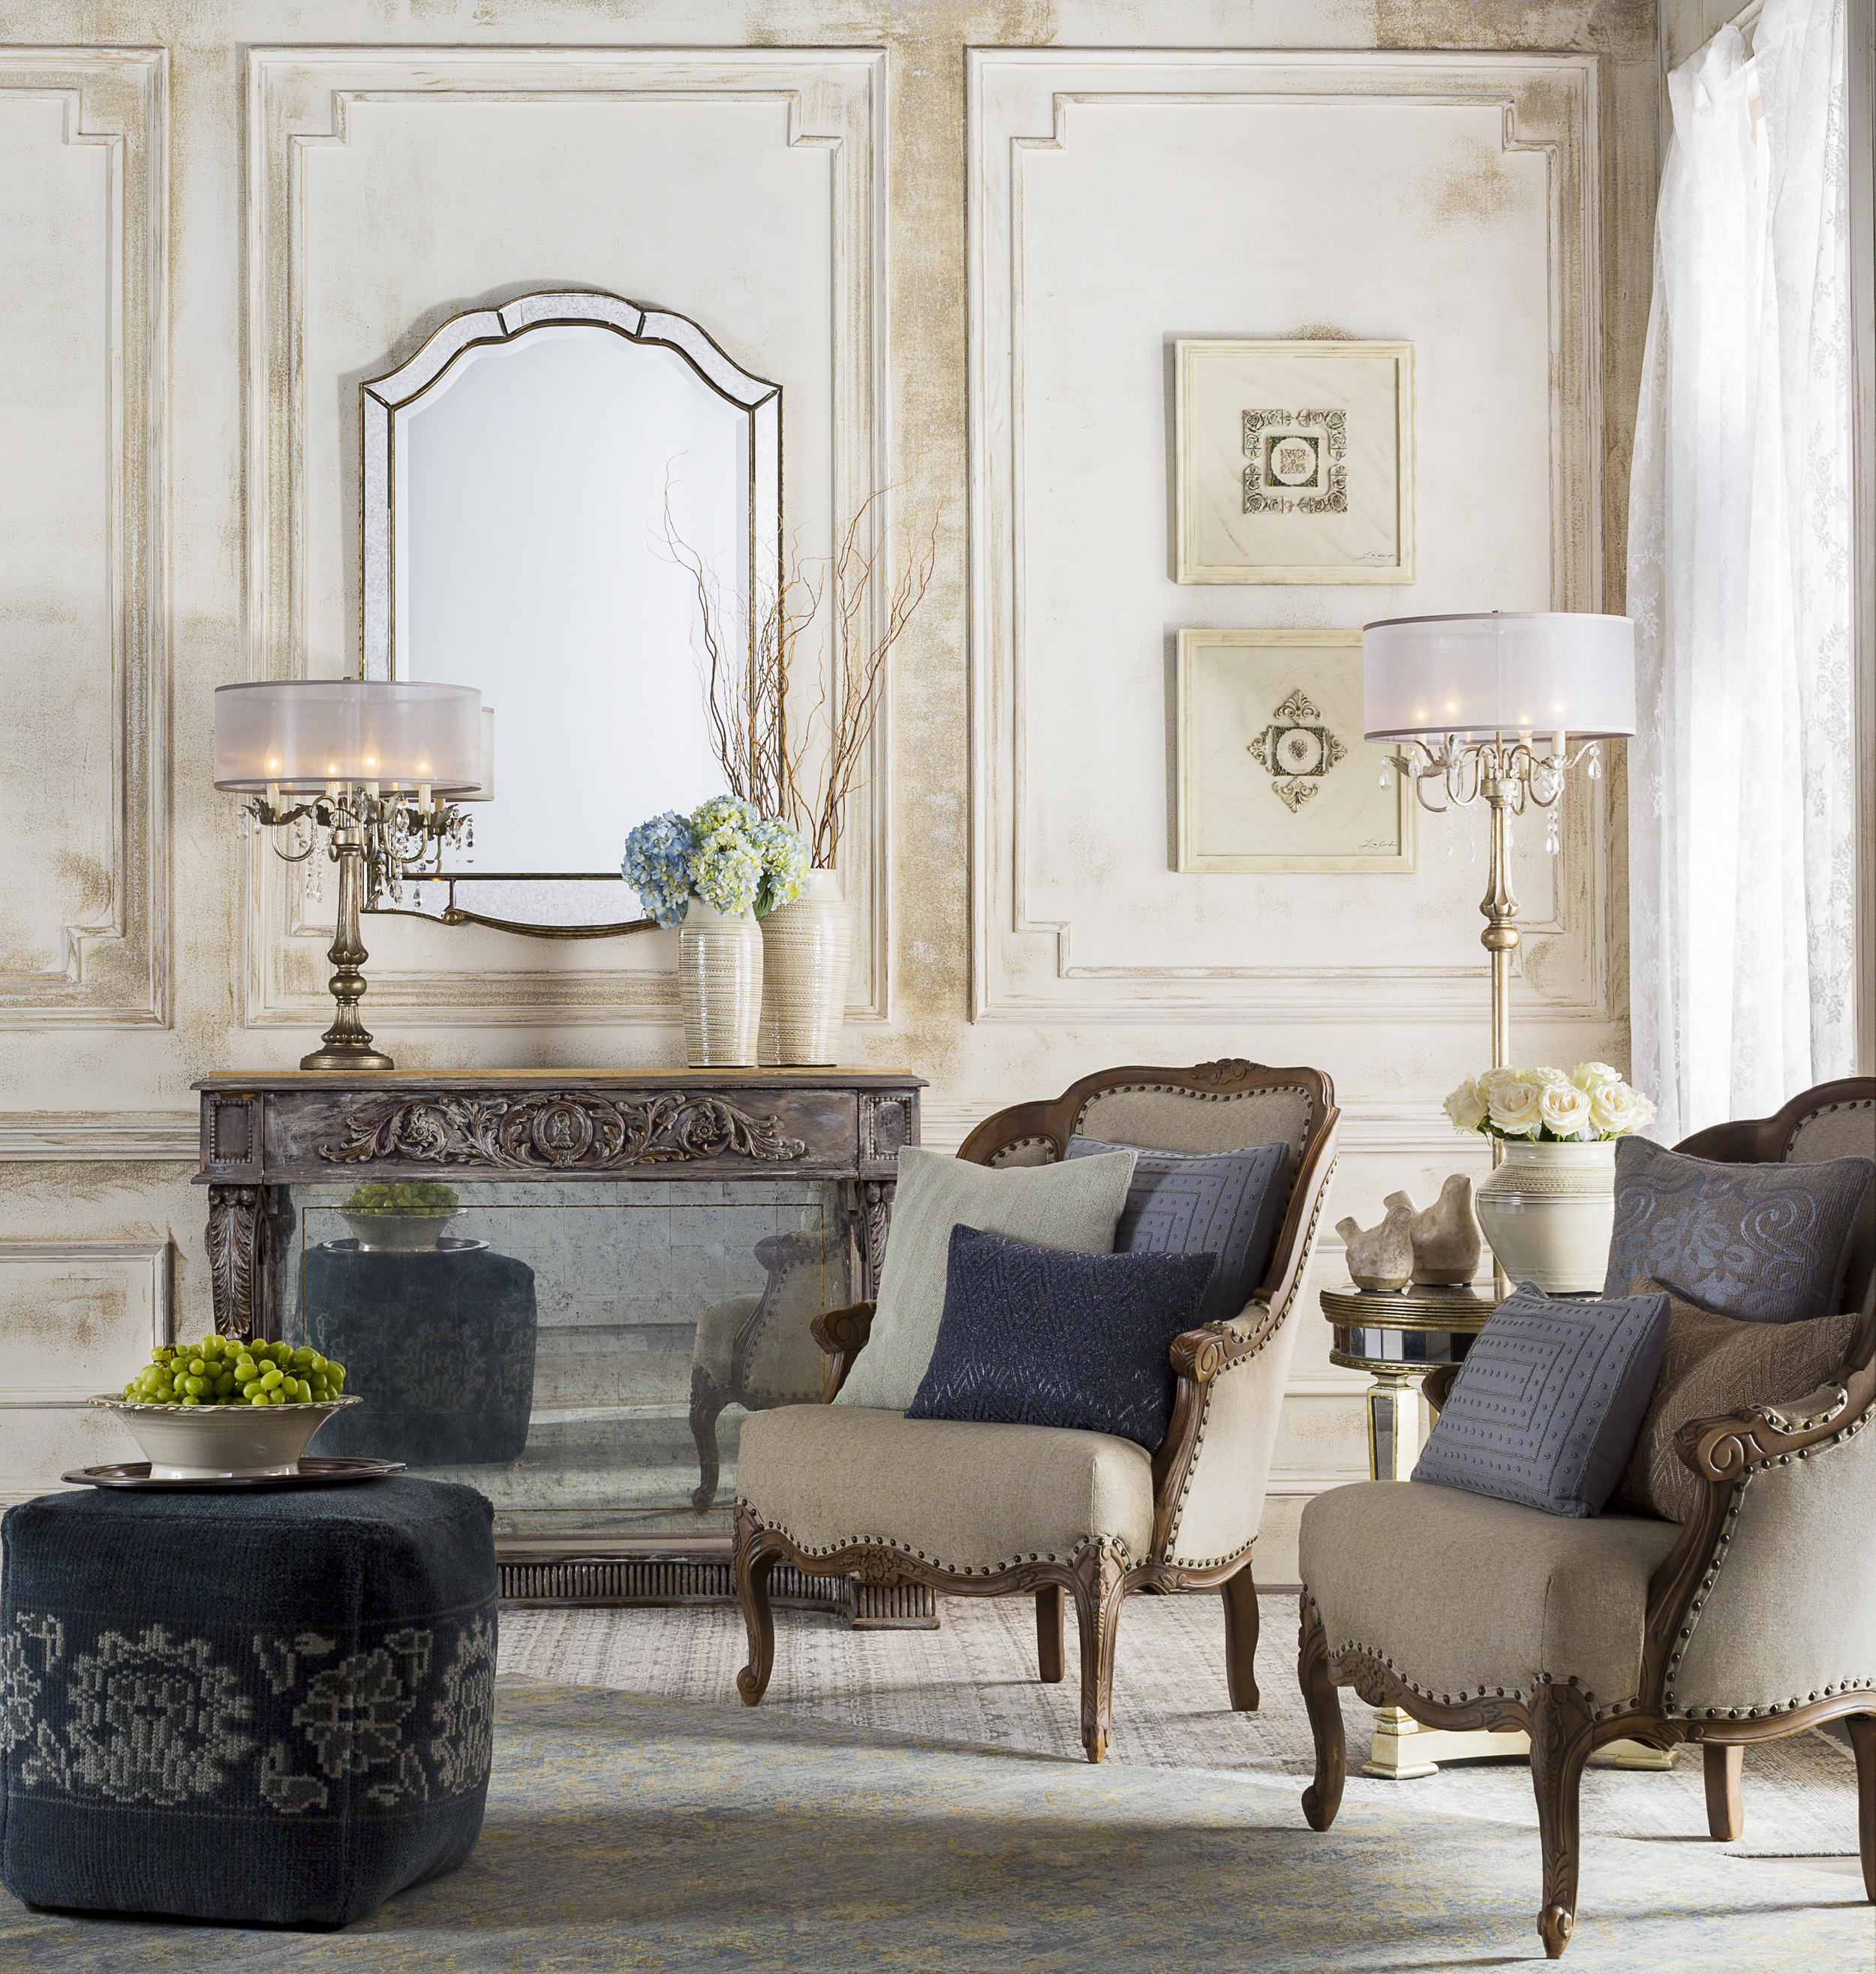 A nod to decadent luxury and vintage glamour with a deep sense of nostalgia. ReflectingEuropean tradition, the trend is feminine and indulgent. Photo courtesy of Surya.